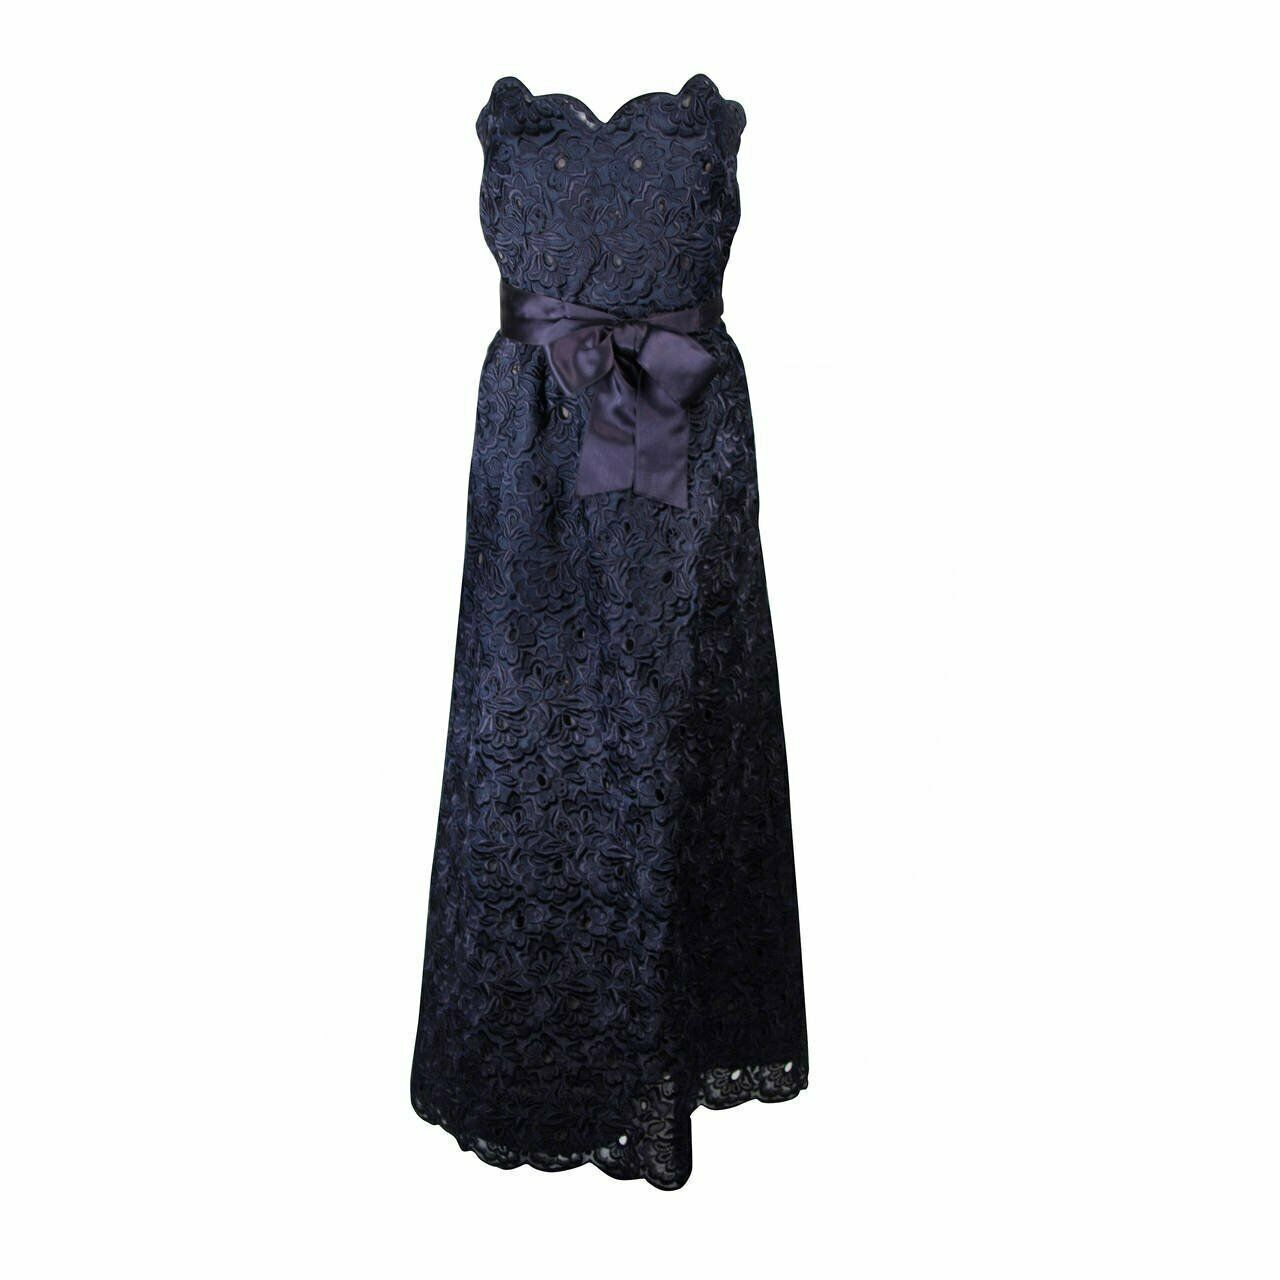 ARNOLD SCAASI Navy Floral Lace Gown Satin Belt Si… - image 1